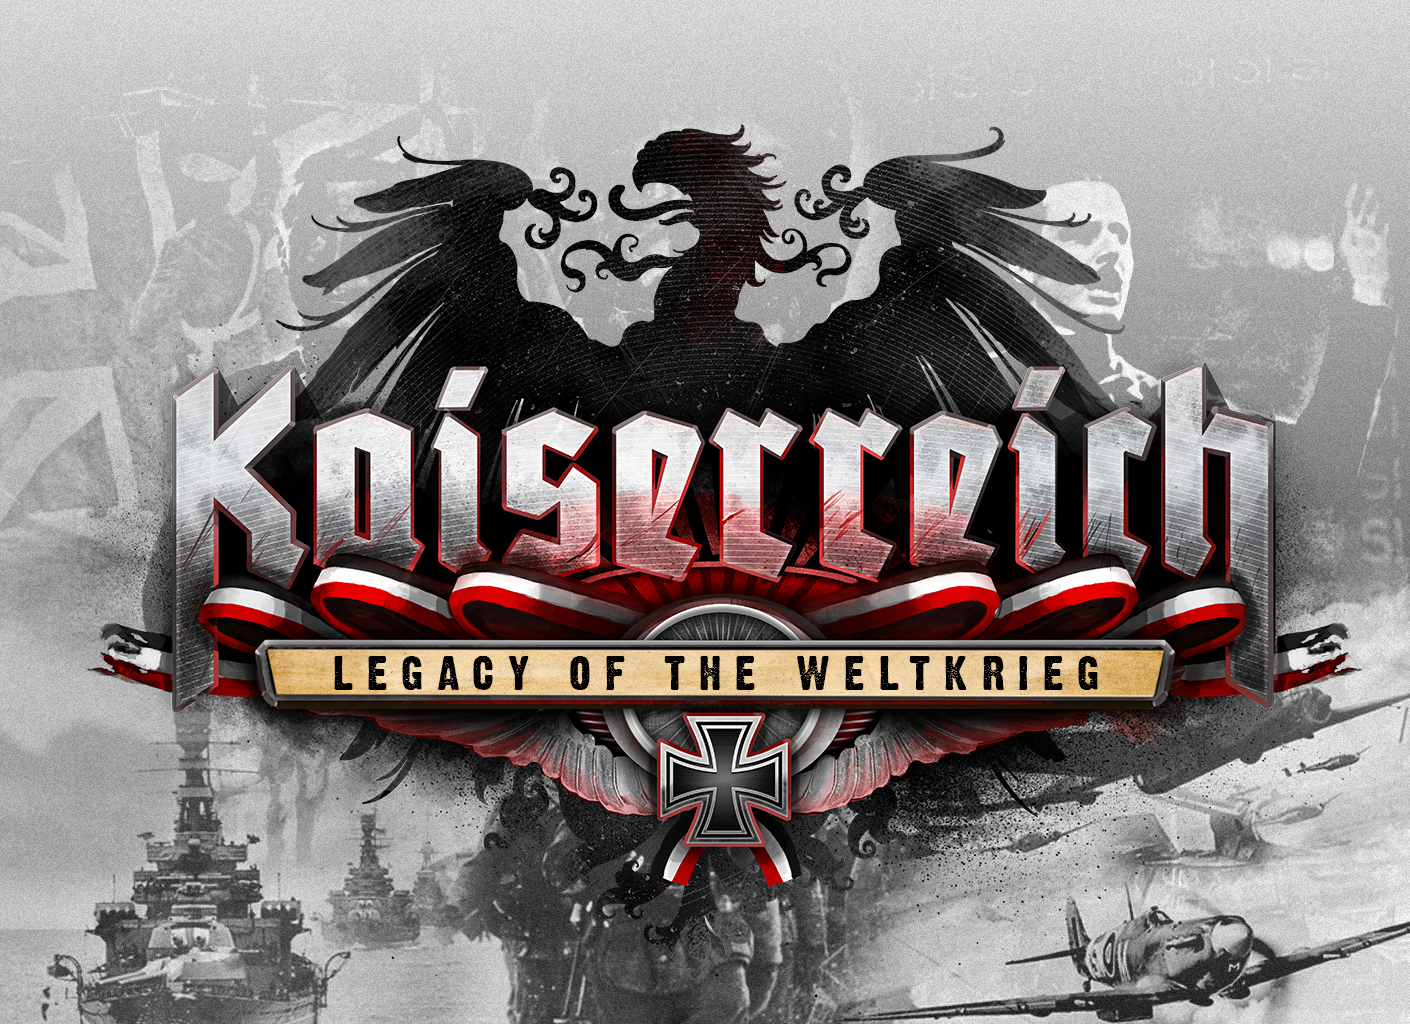 Kaiserreich:Legacy of the Weltkrieg mod for Hearts of Iron